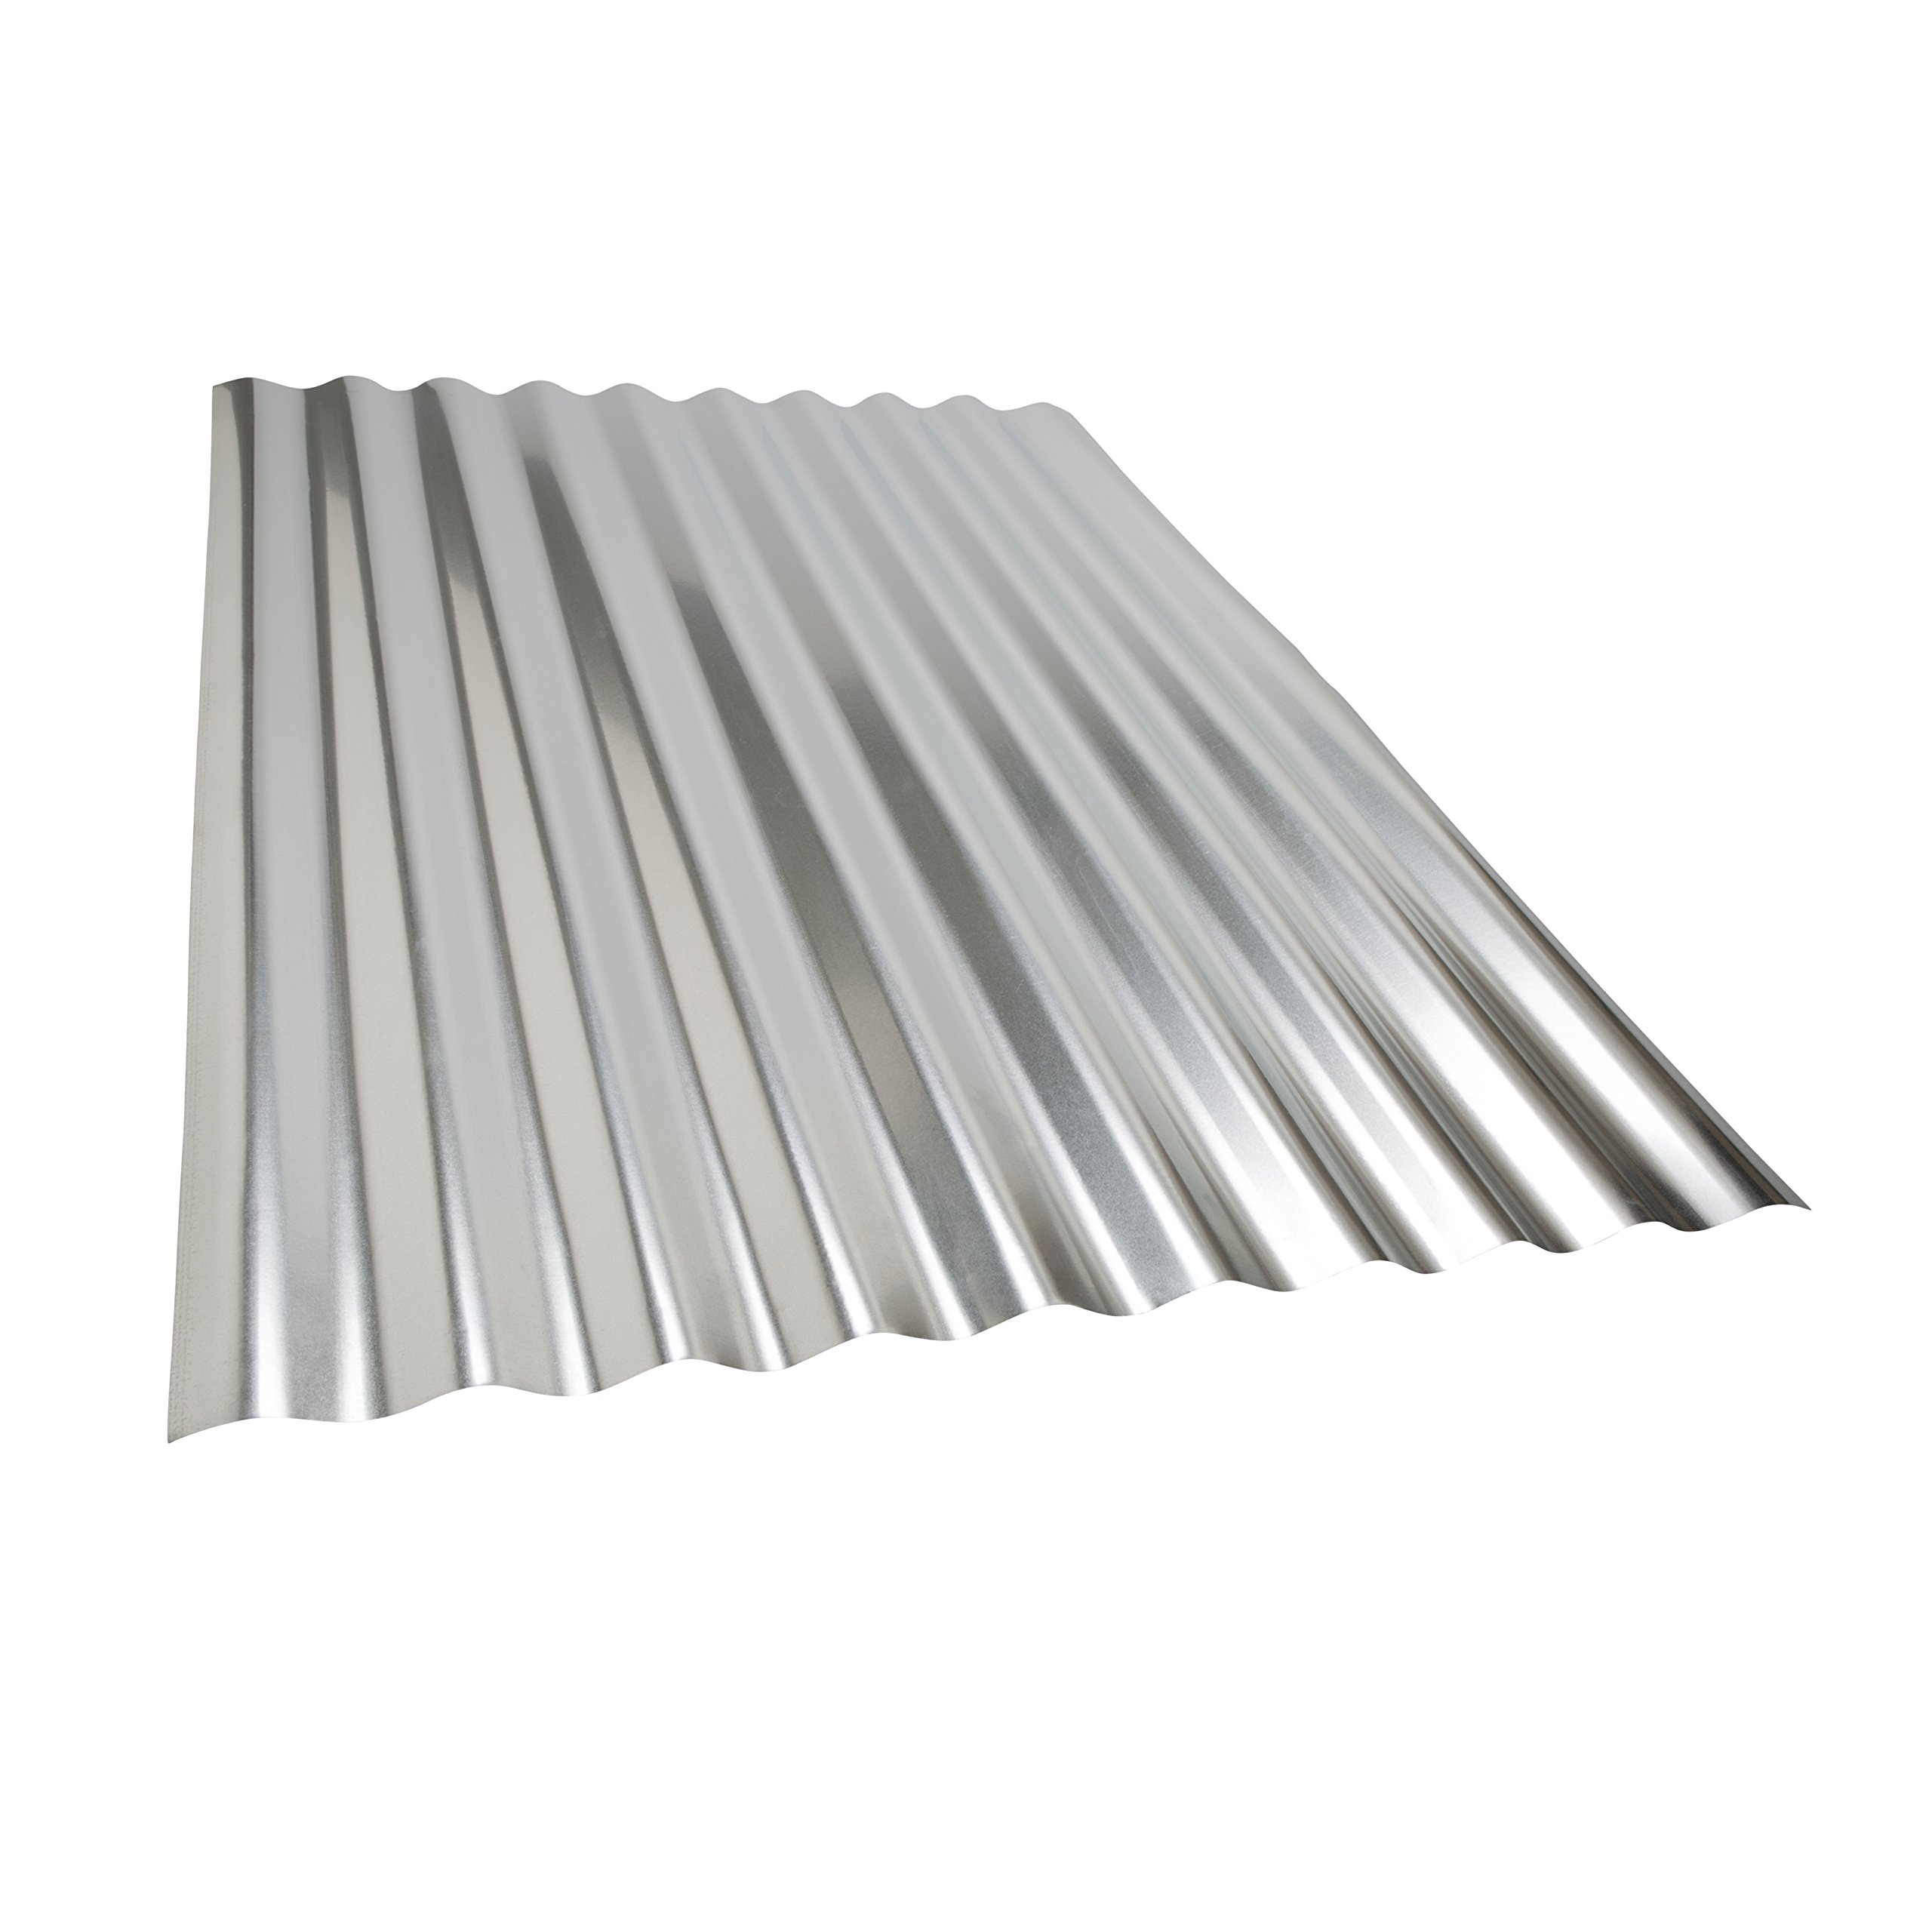 Amerimax Home Products 4736011001 Corrugated Metal 3' Project Panel, 3 Piece by Amerimax Home Products